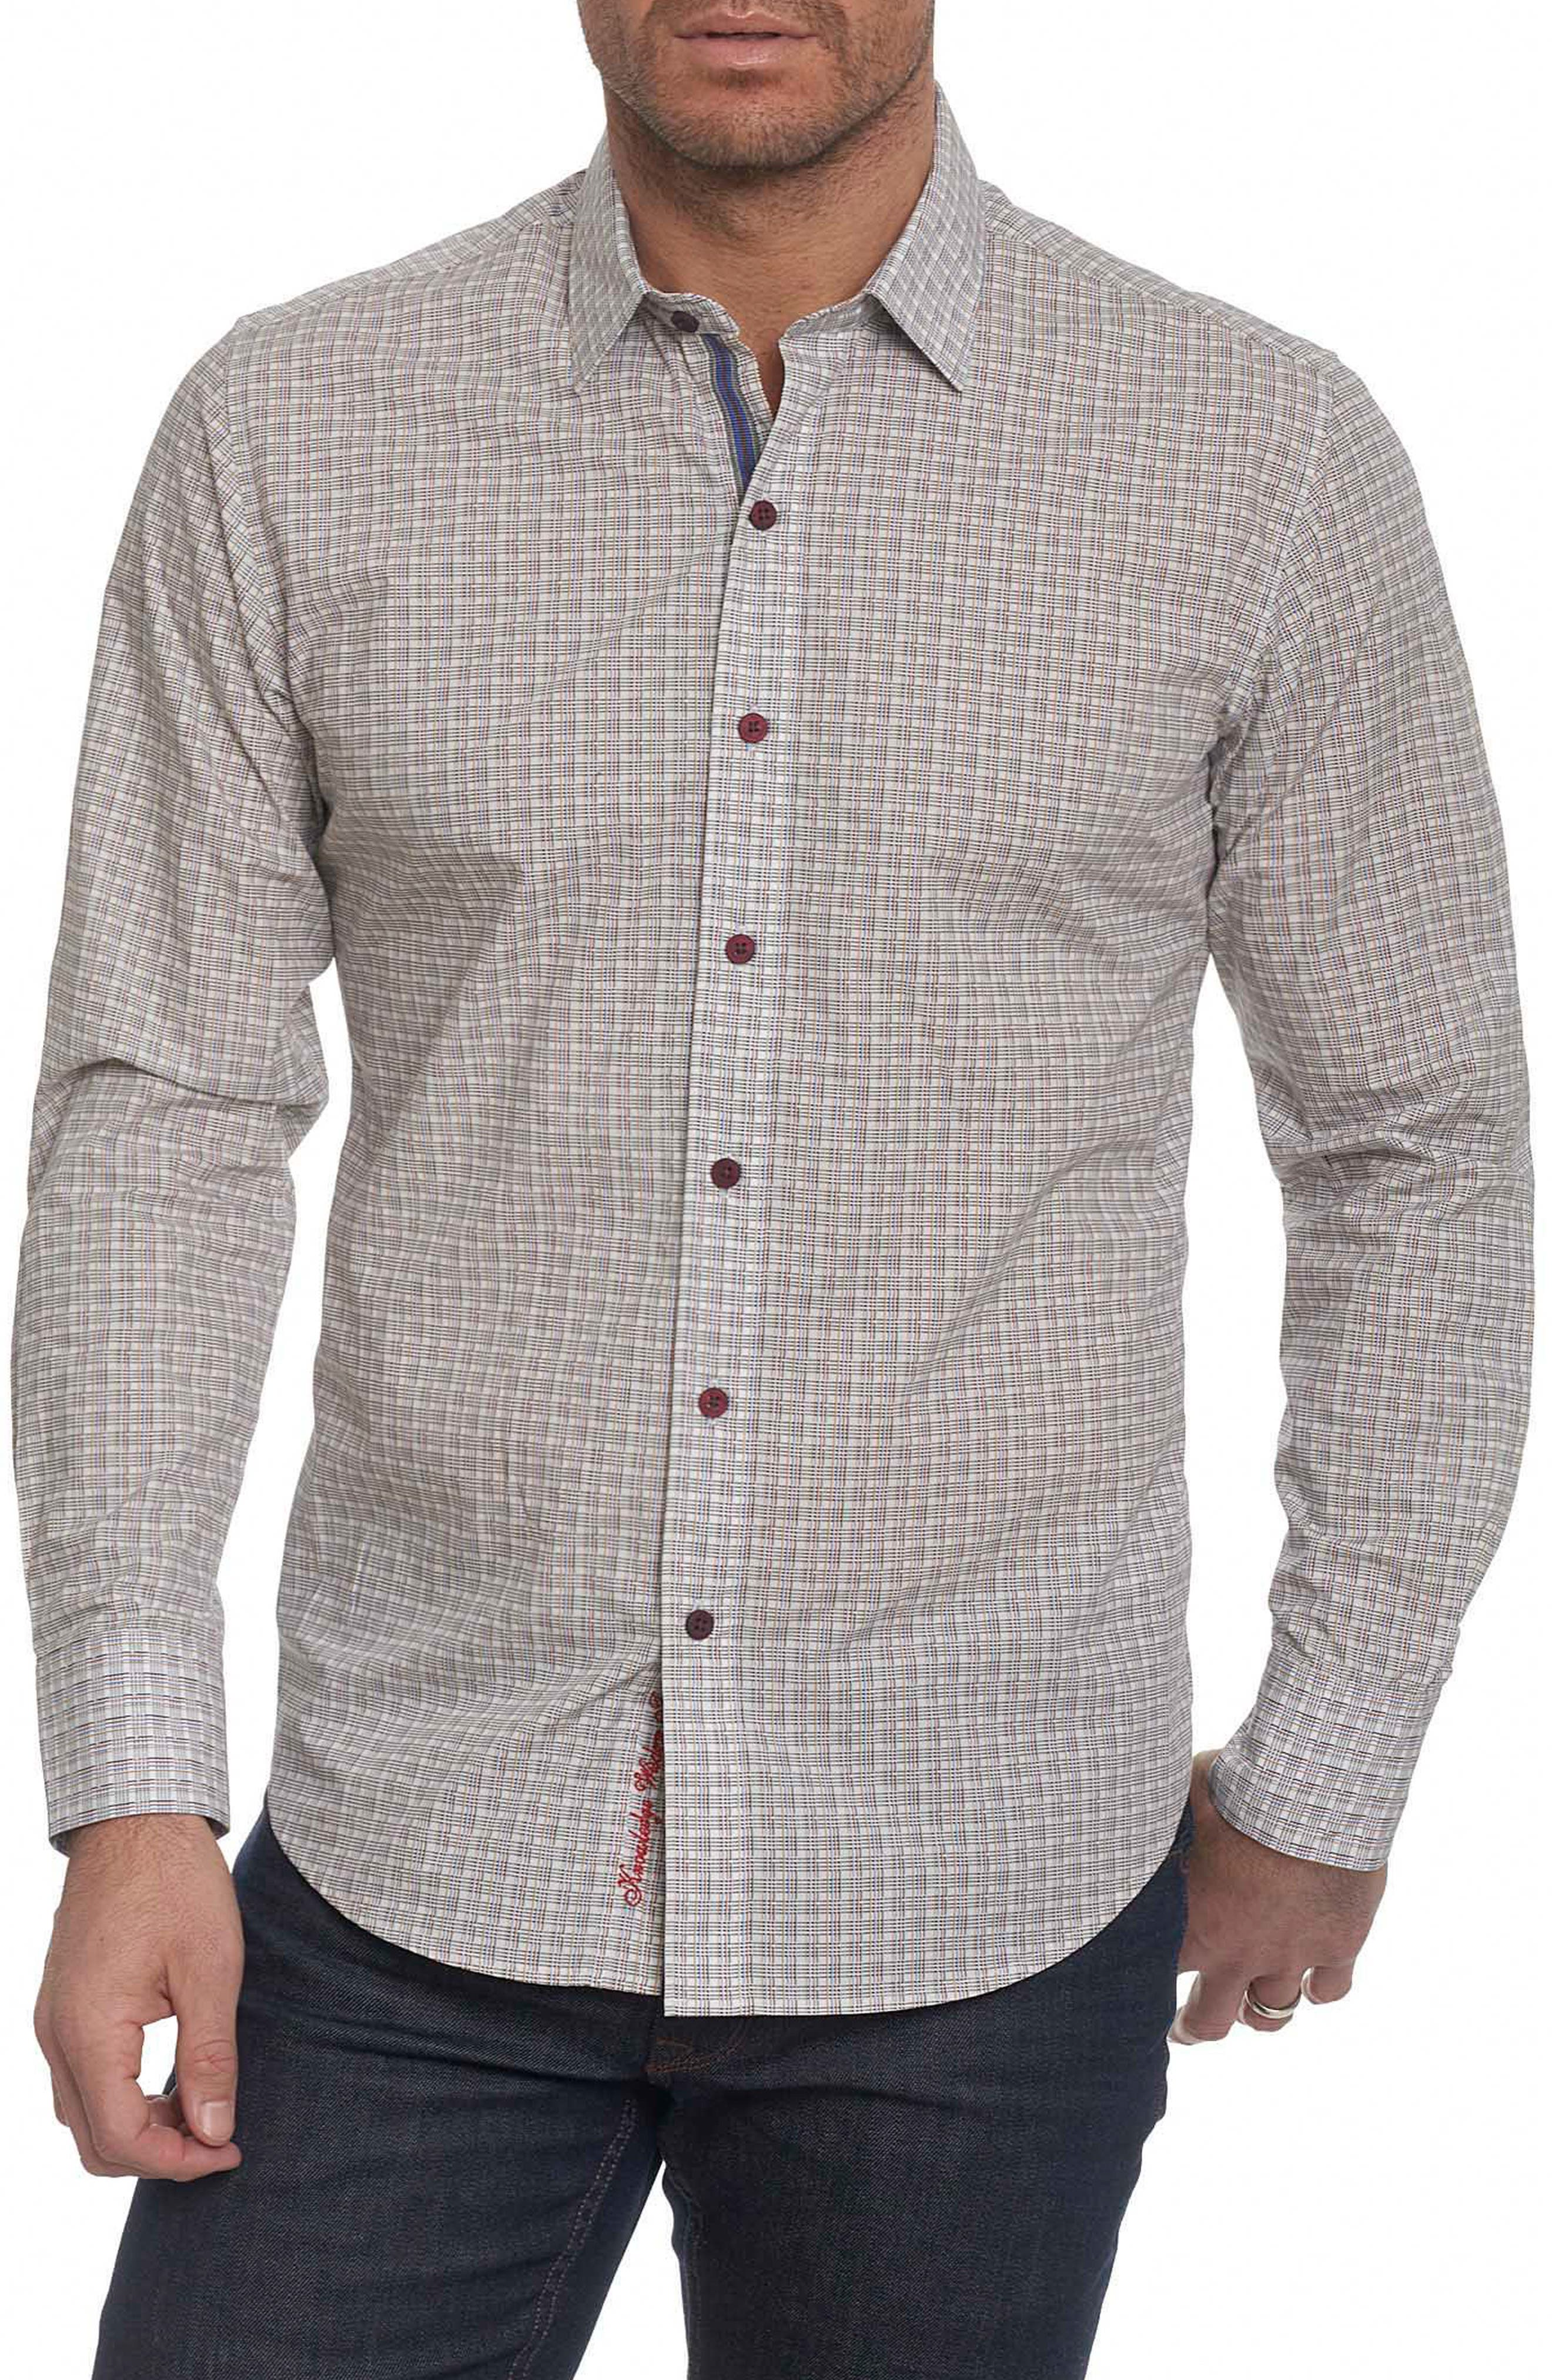 Alternate Image 1 Selected - Robert Graham Sandy Creek Classic Fit Sport Shirt